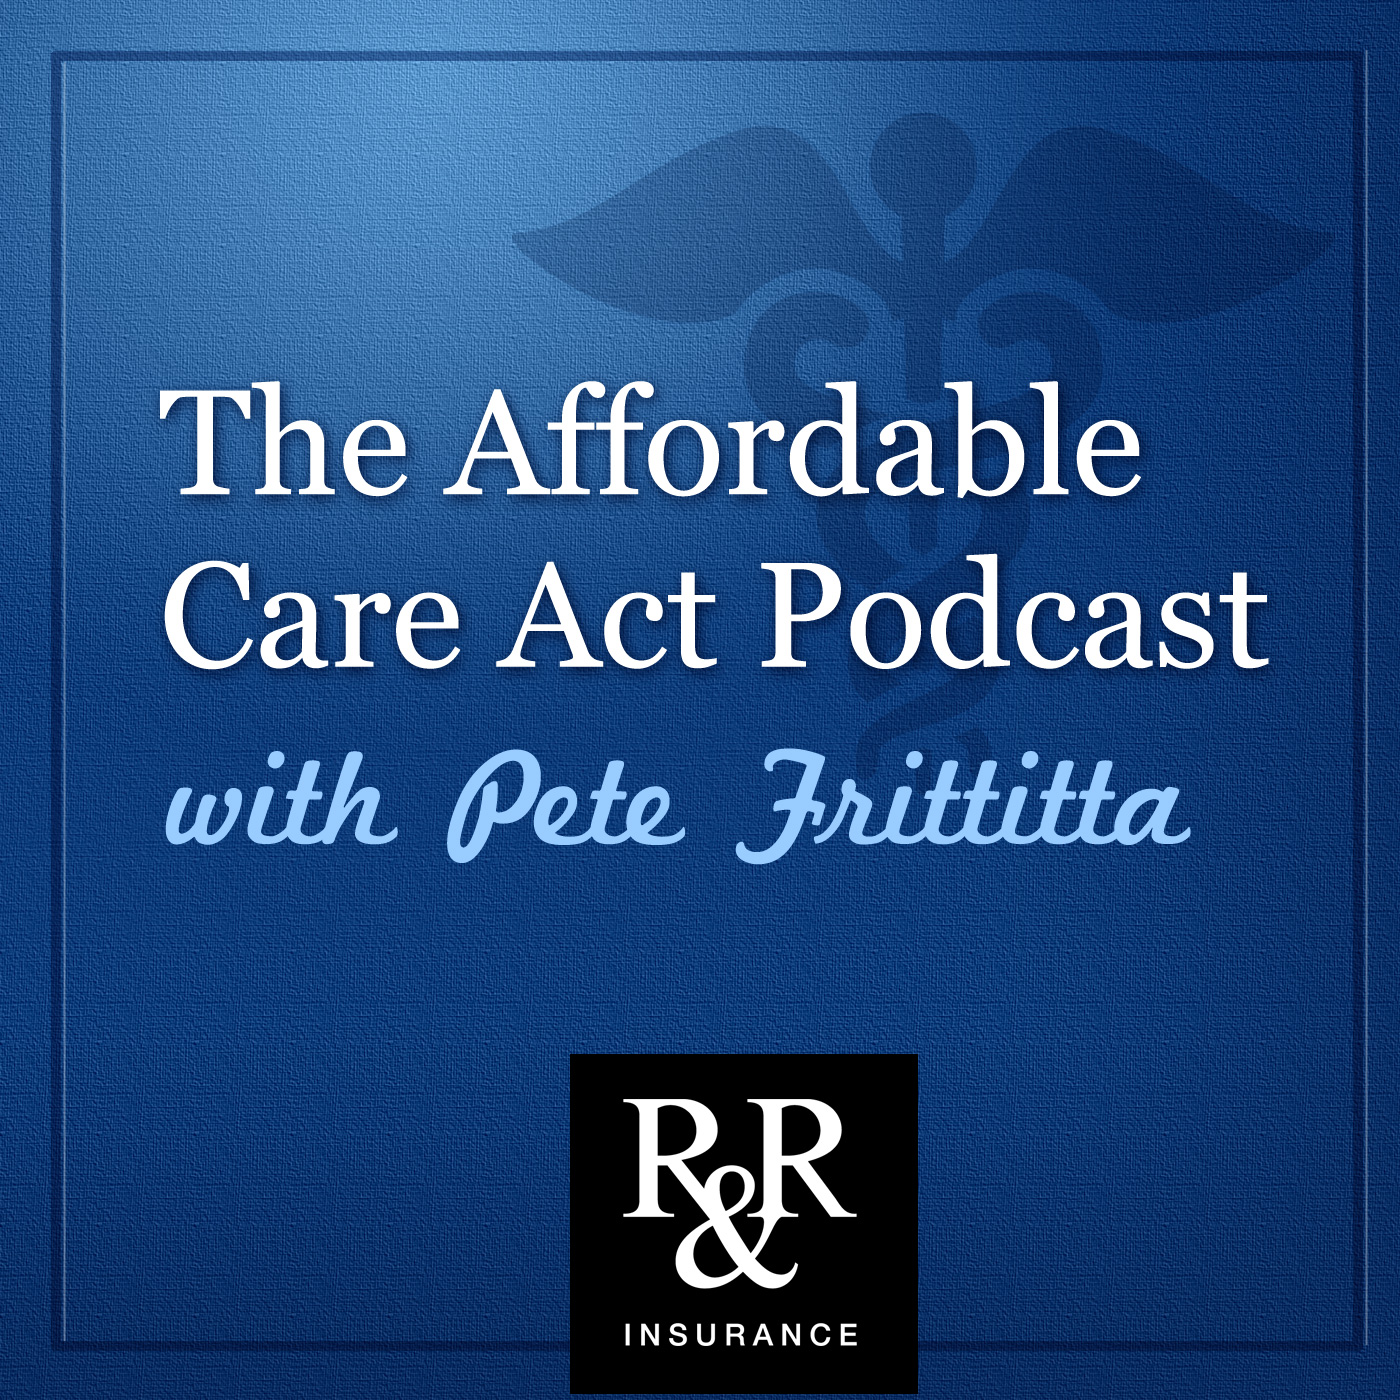 The Affordable Care Act Podcast